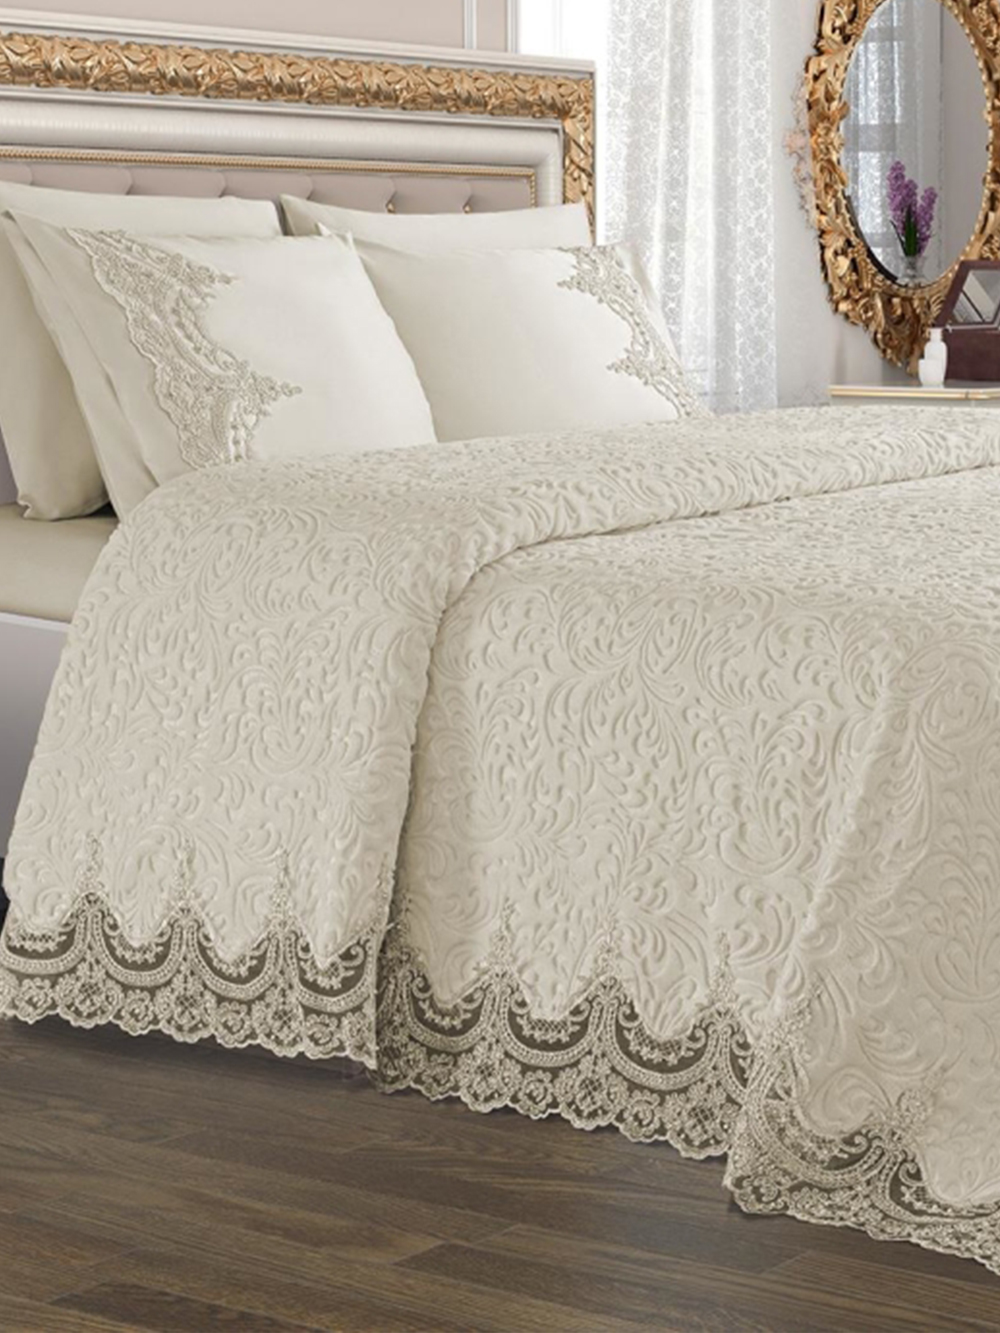 Blanket Set with Pillowcases Cushion Cover French Guipure Cream Arus for Bedroom Bed Sheet Home